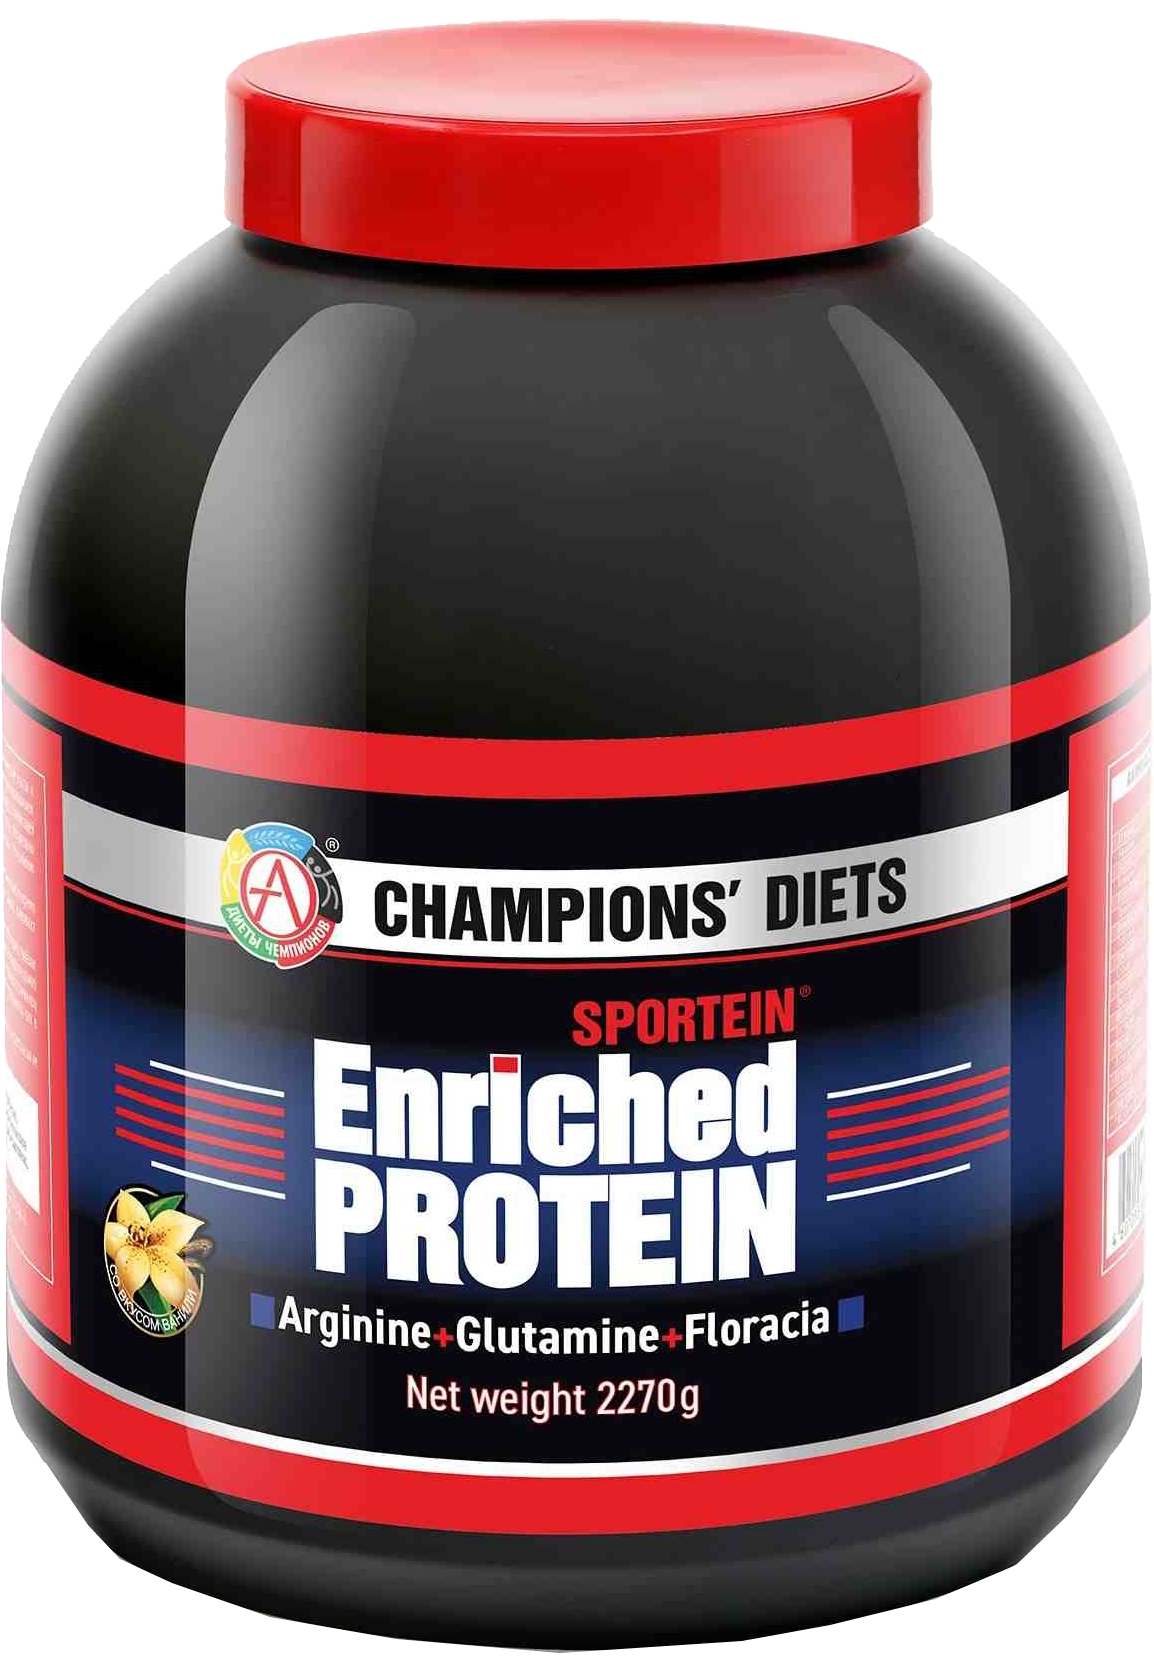 Enriched PROTEIN Chocolate